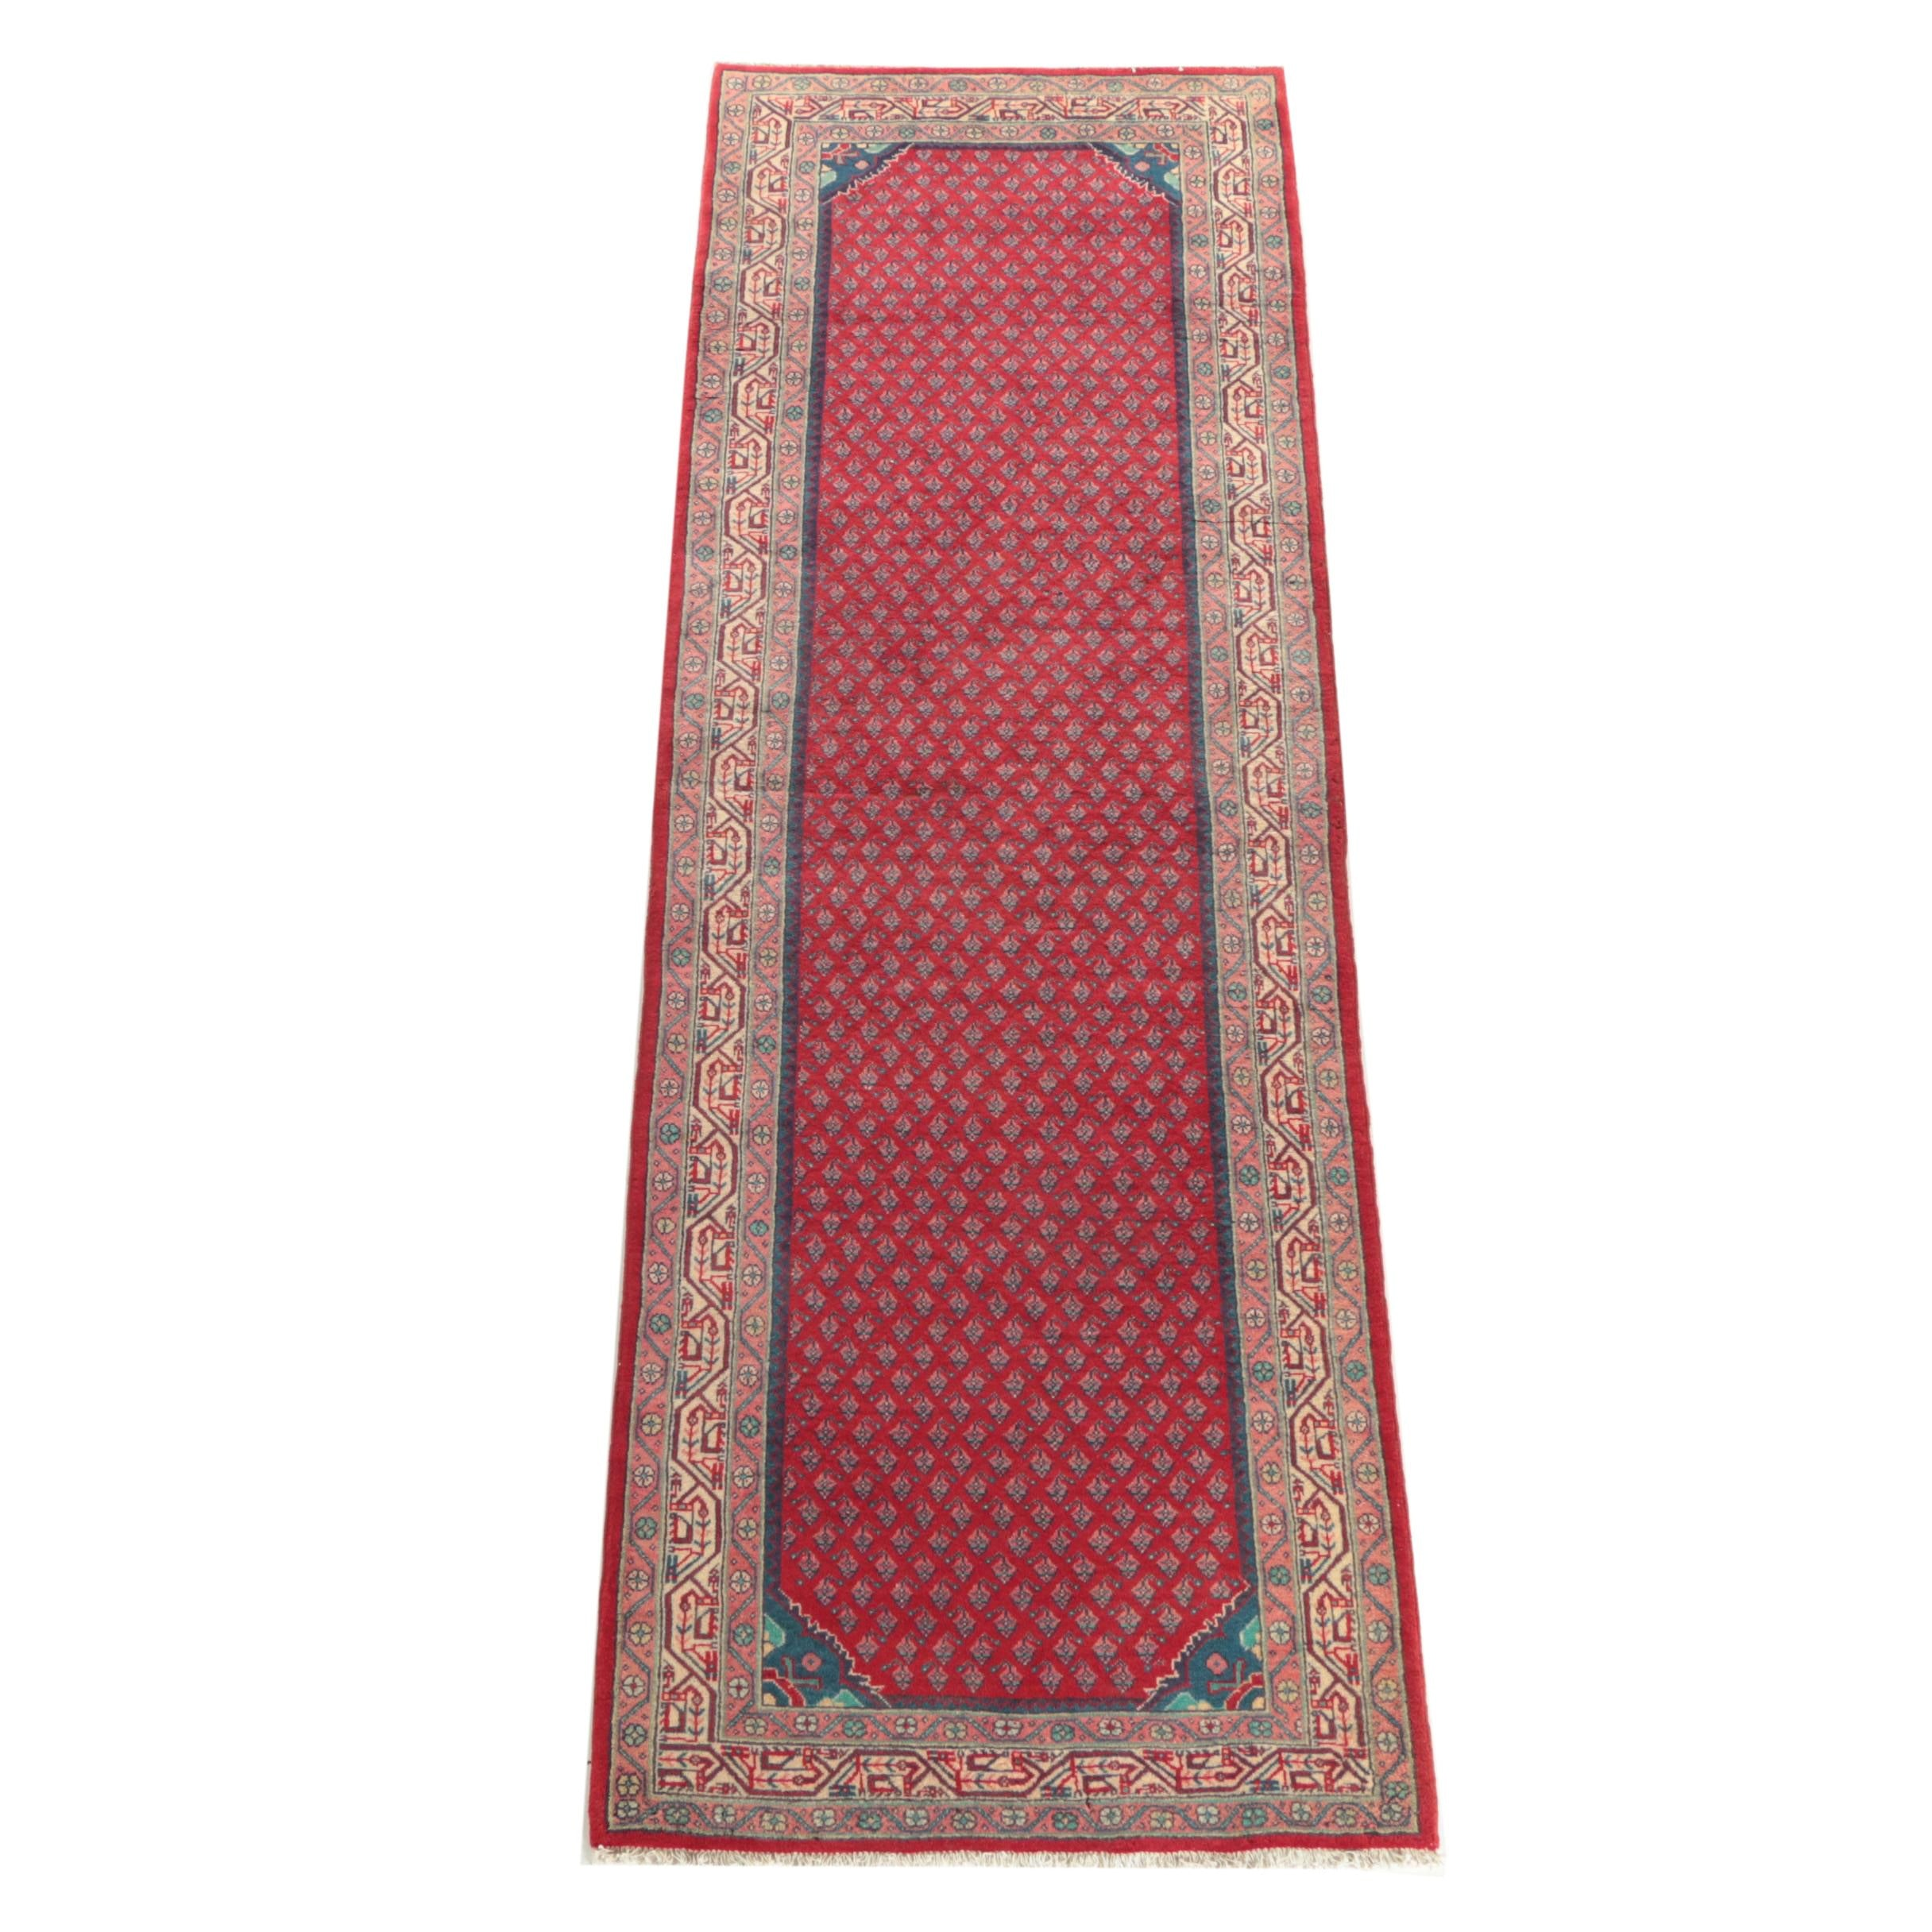 Hand-Knotted Persian Serabend Carpet Runner